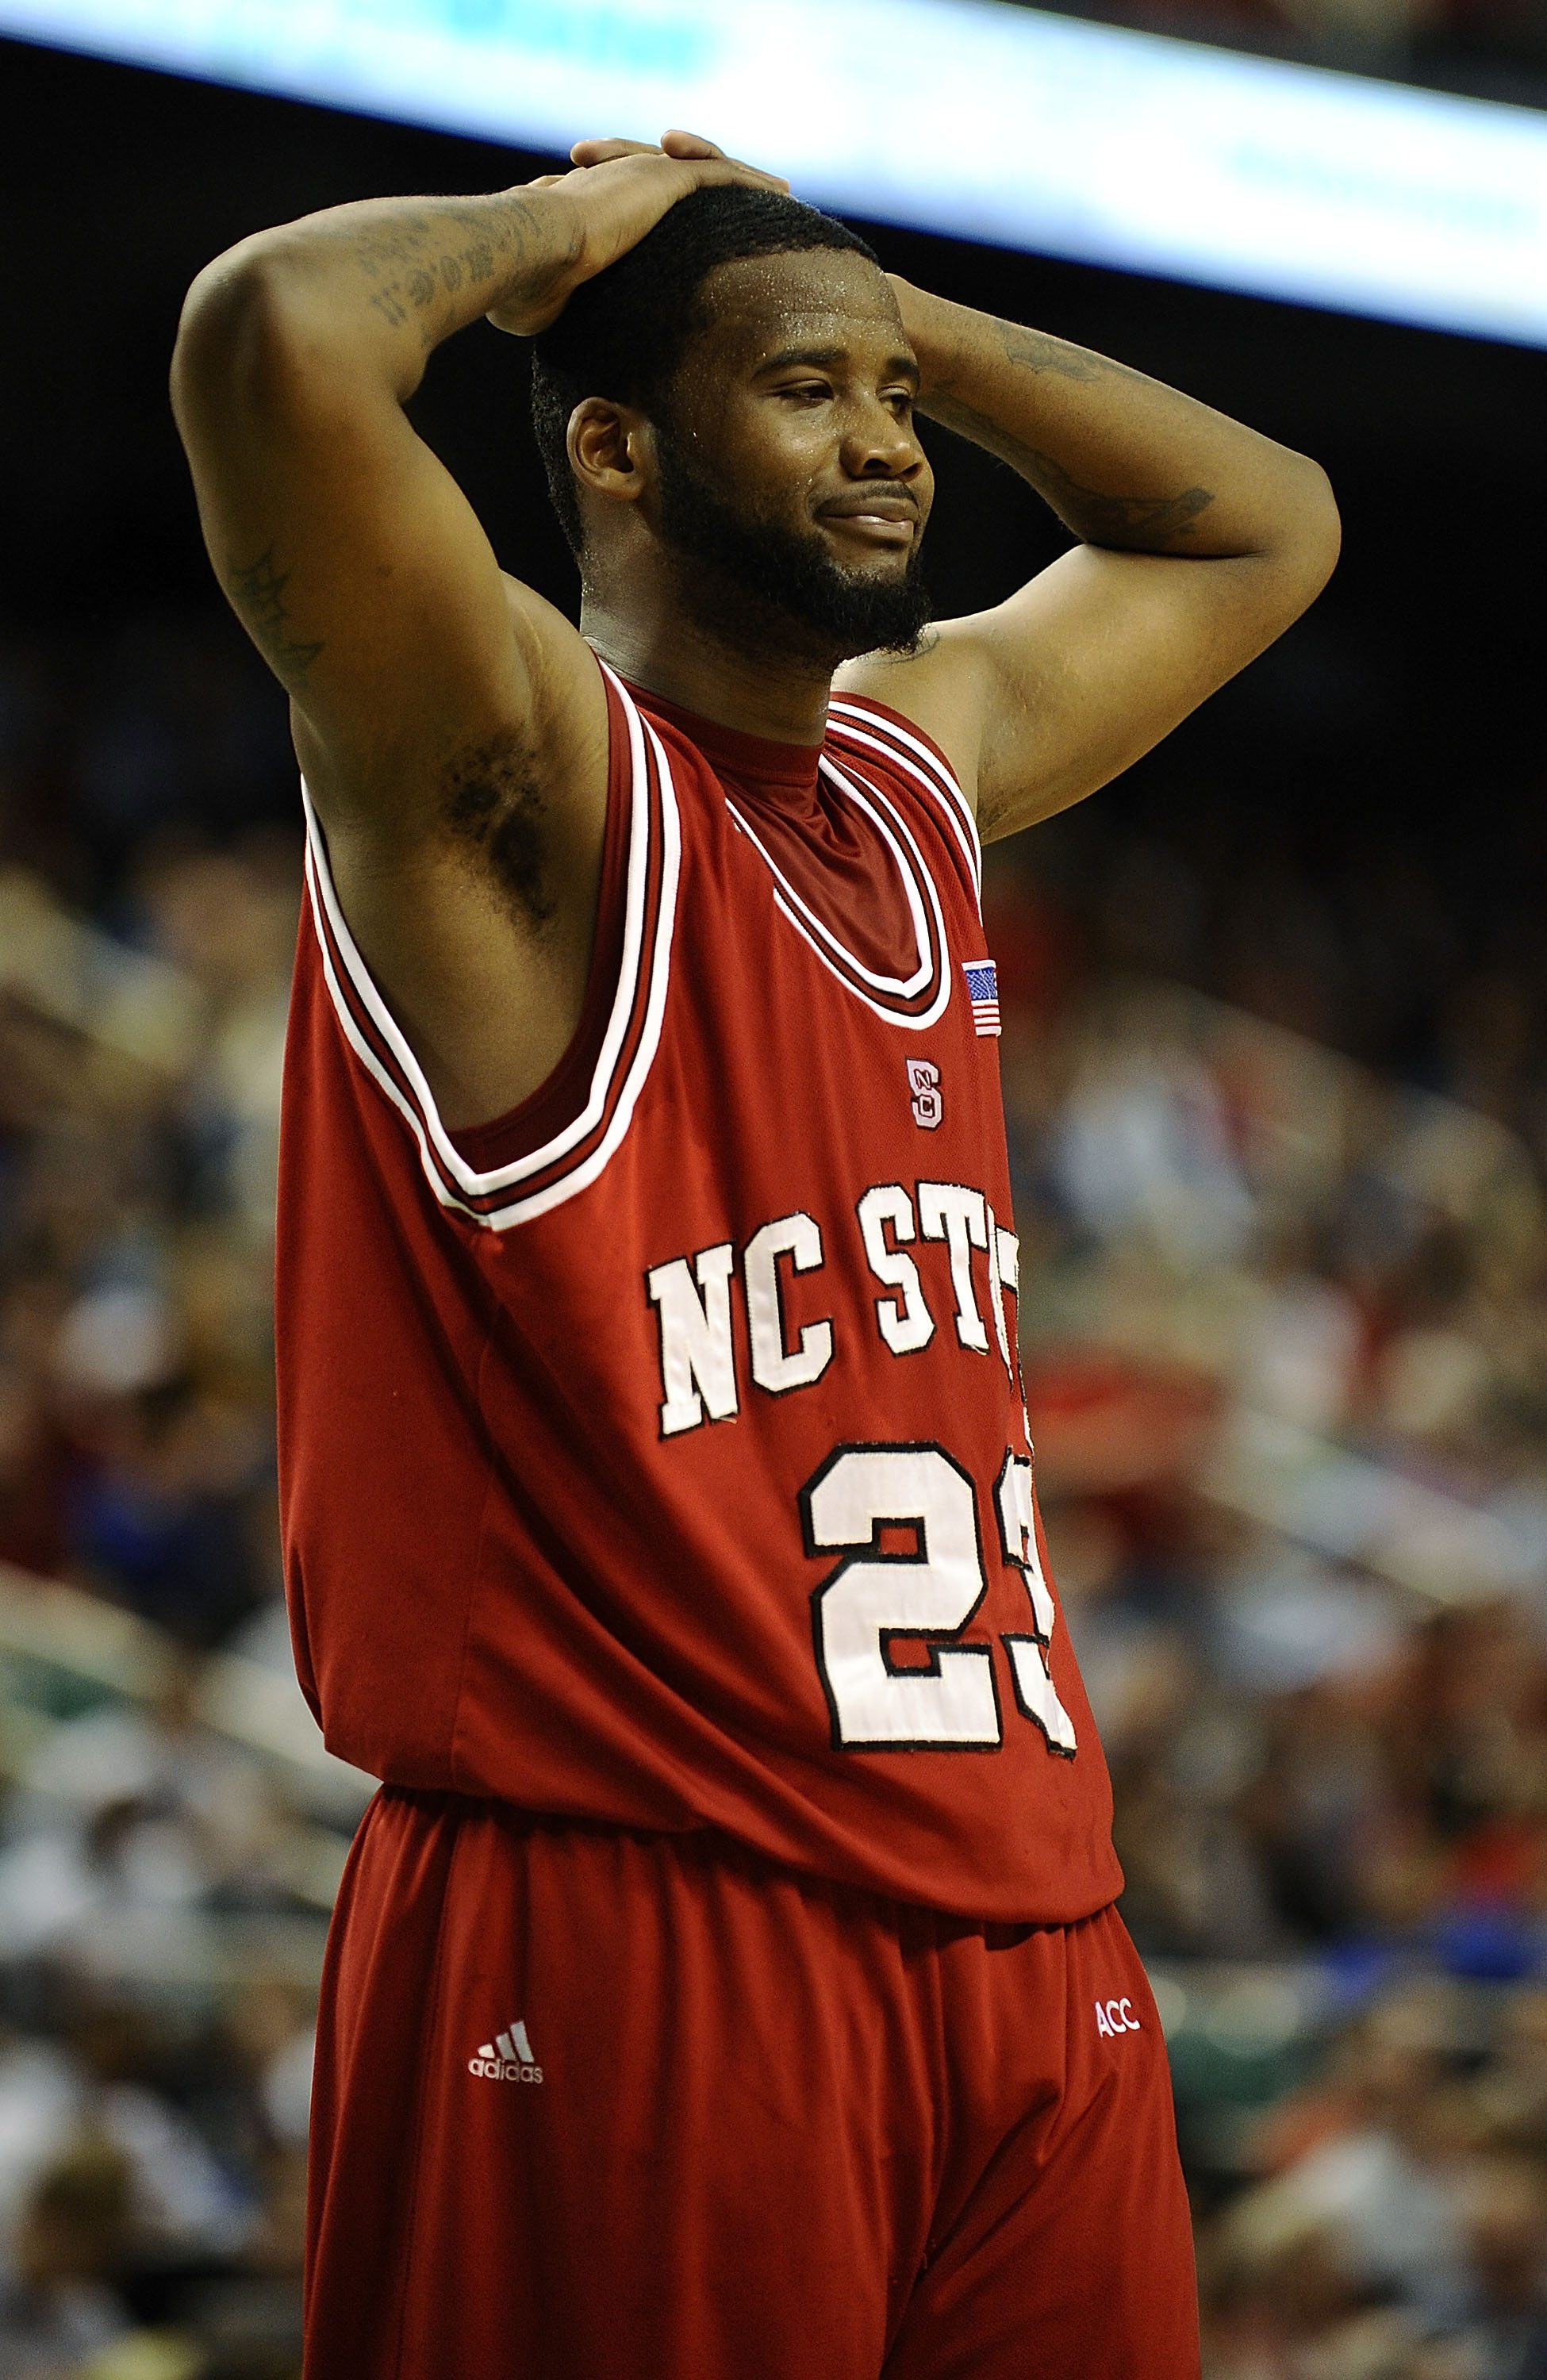 GREENSBORO, NC - MARCH 13:  Tracy Smith #23 of the North Carolina State Wolfpack reacts in a semifinal game against the Georgia Tech Yellow Jackets in the 2010 ACC Men's Basketball Tournament at the Greensboro Coliseum on on March 13, 2010 in Greensboro,